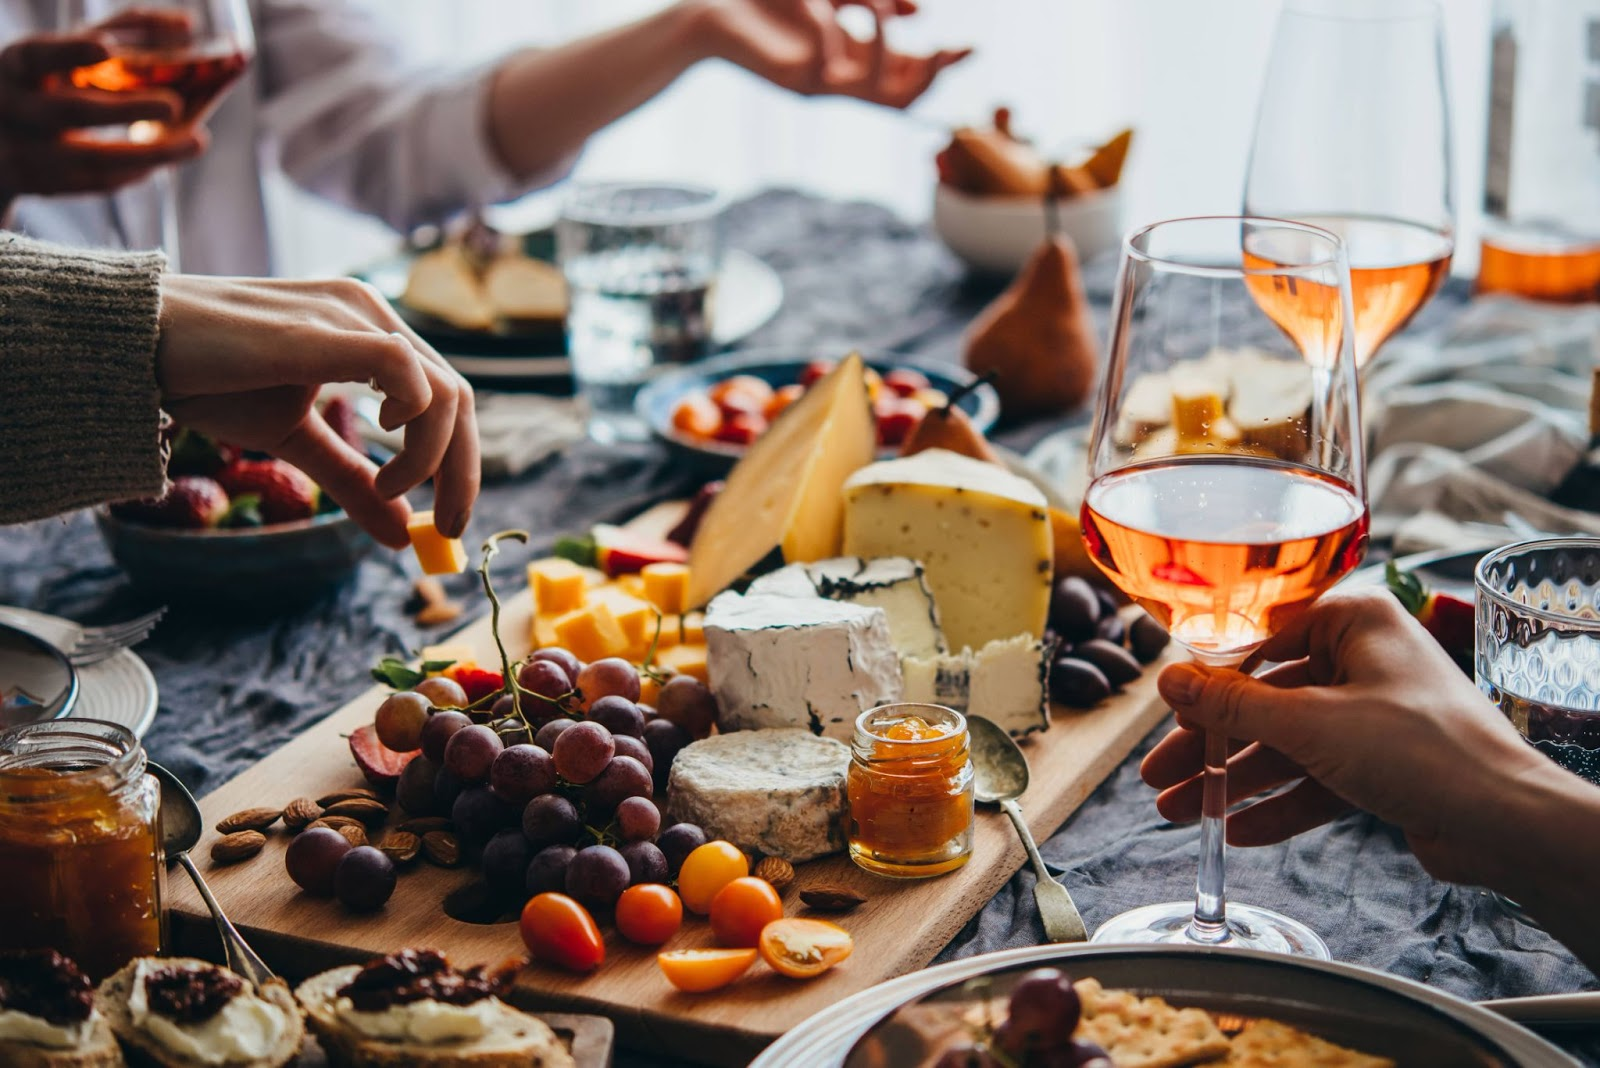 People sitting around a table with glasses of wine, fruit, and a charcuterie board